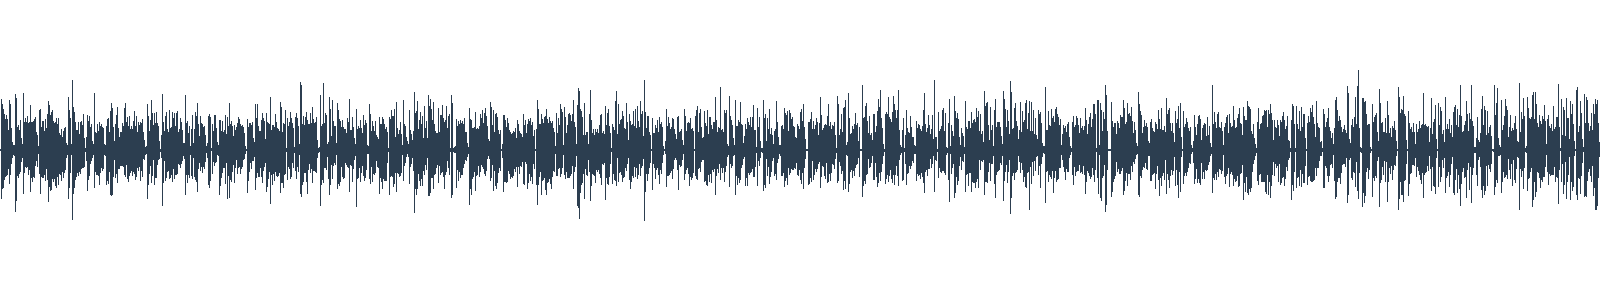 Websterovci waveform